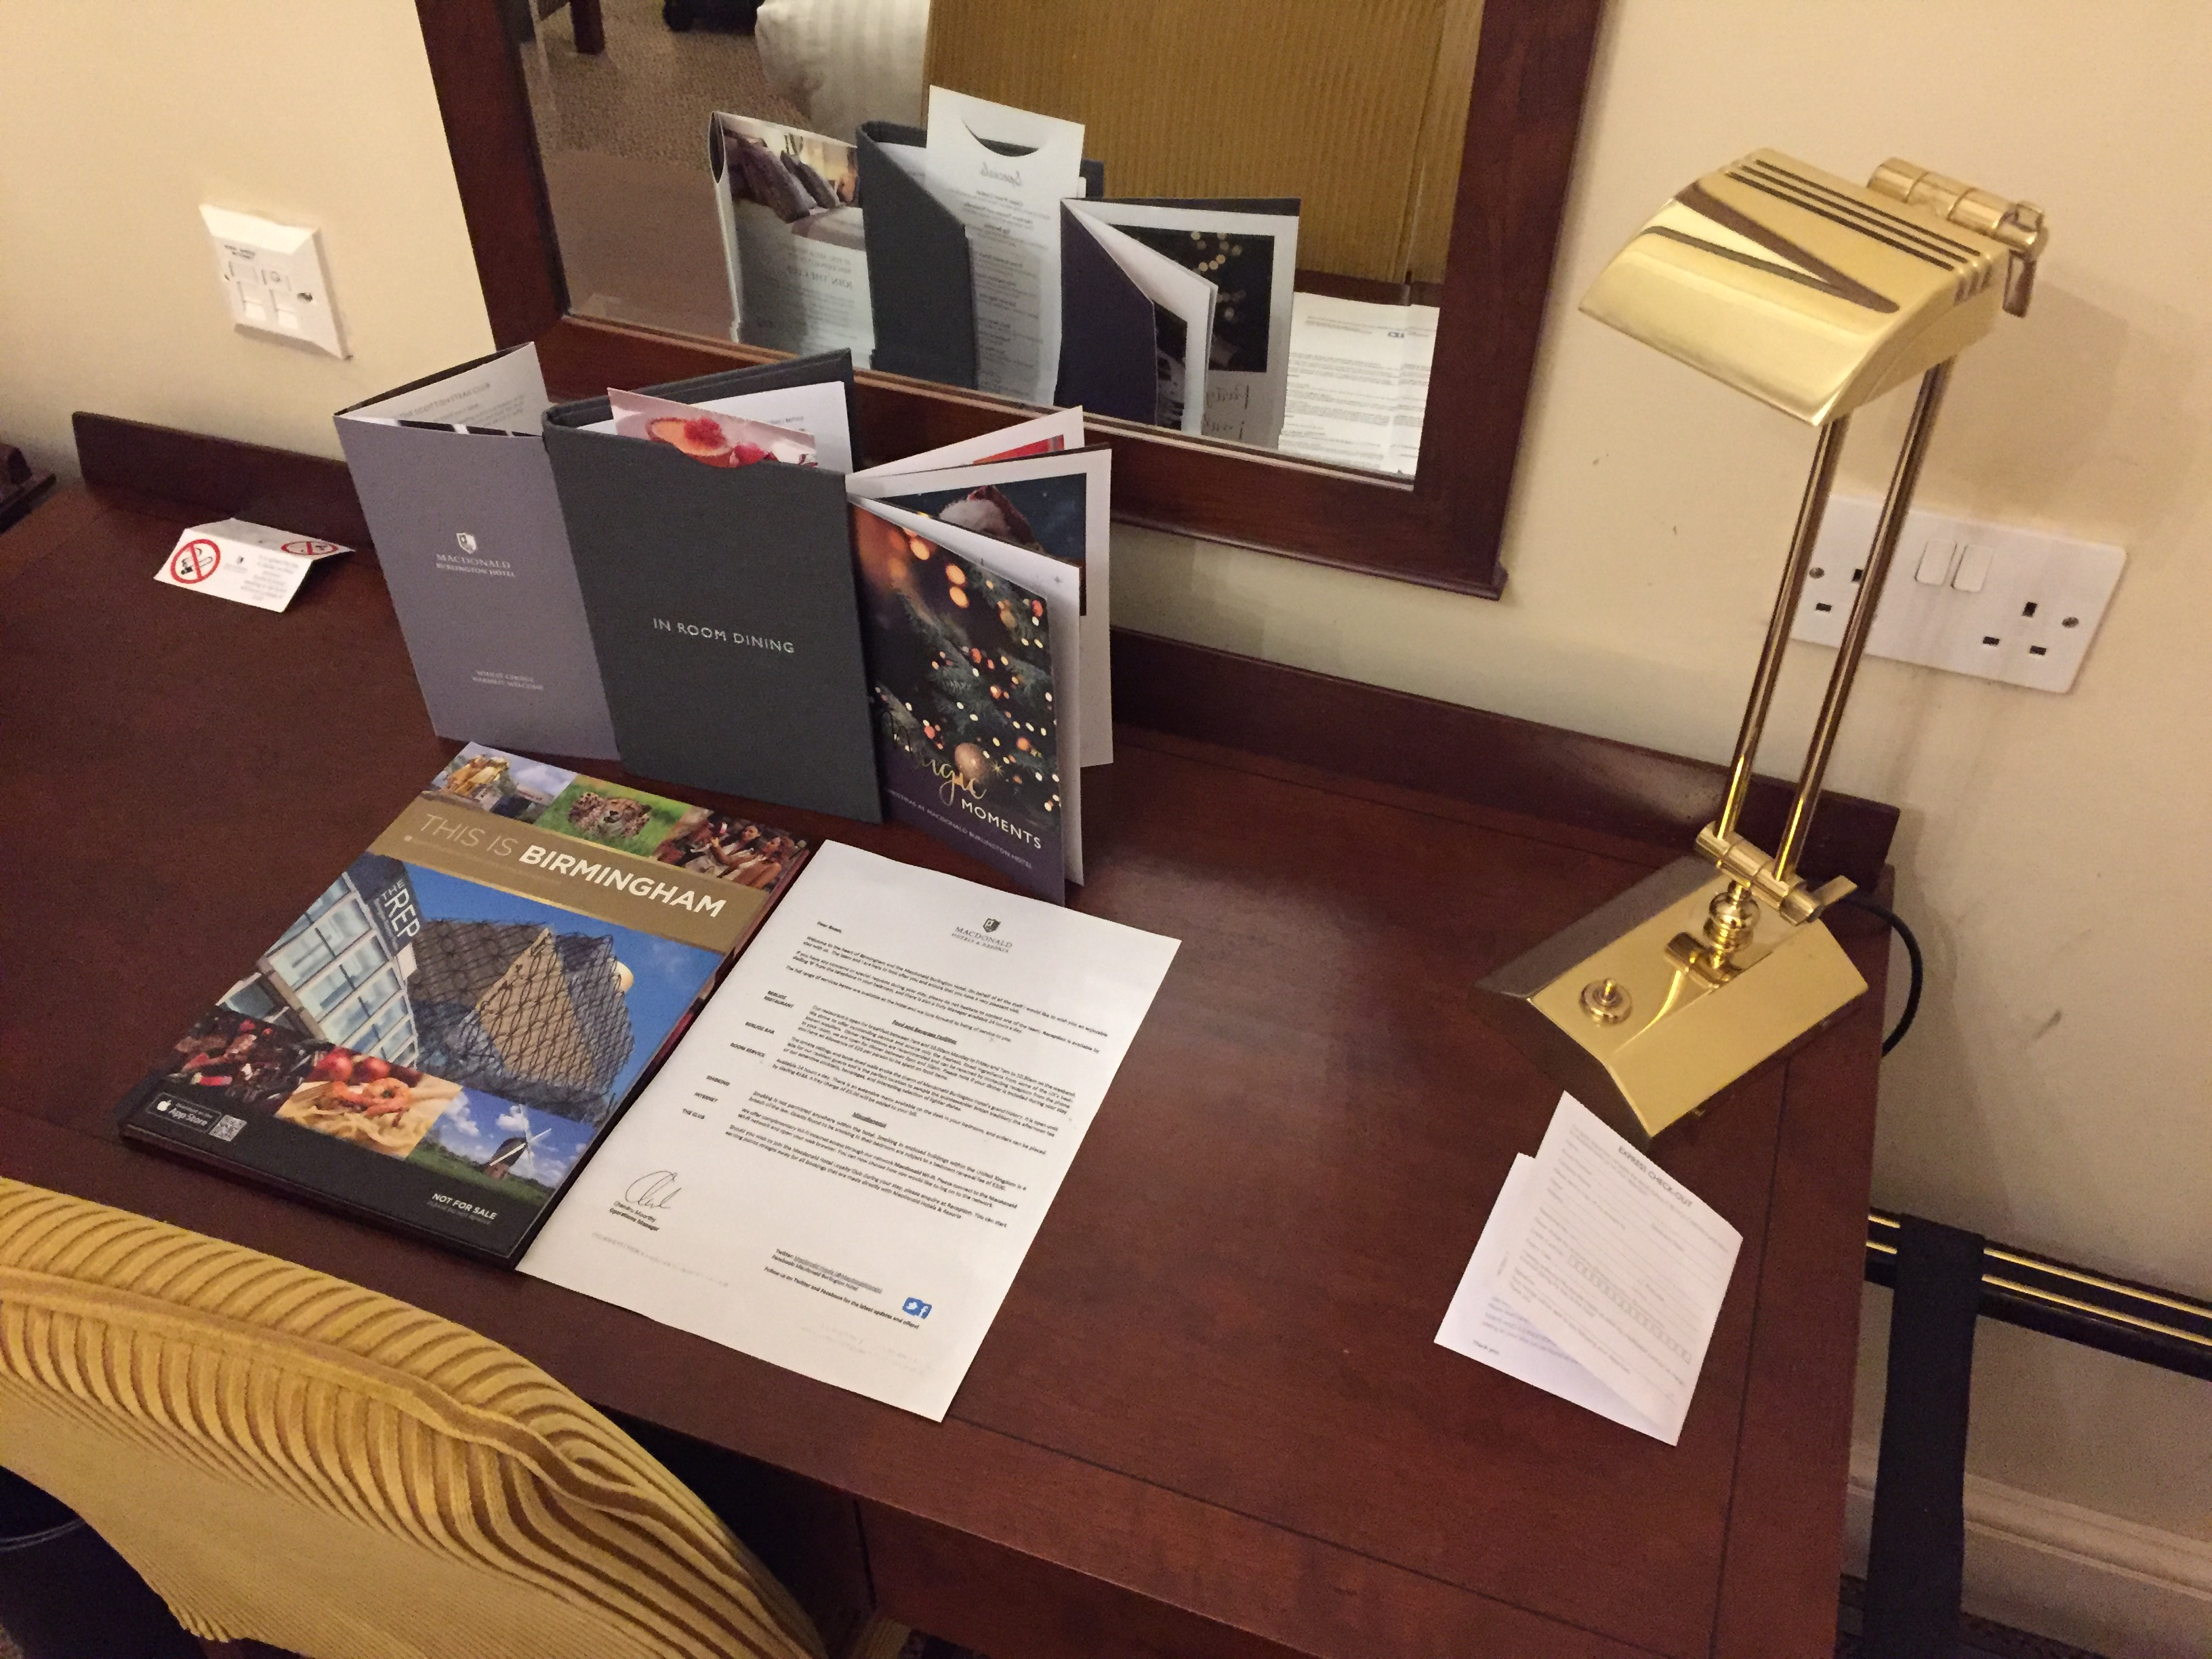 Desk in my hotel rom, with a gold coloured reading lamp, a welcome letter, a hardback book called This Is Birmingham, a leaflet about the hotel, a room service dining menu, and a booklet about their Christmas events. A large mirror is on the wall above the desk.